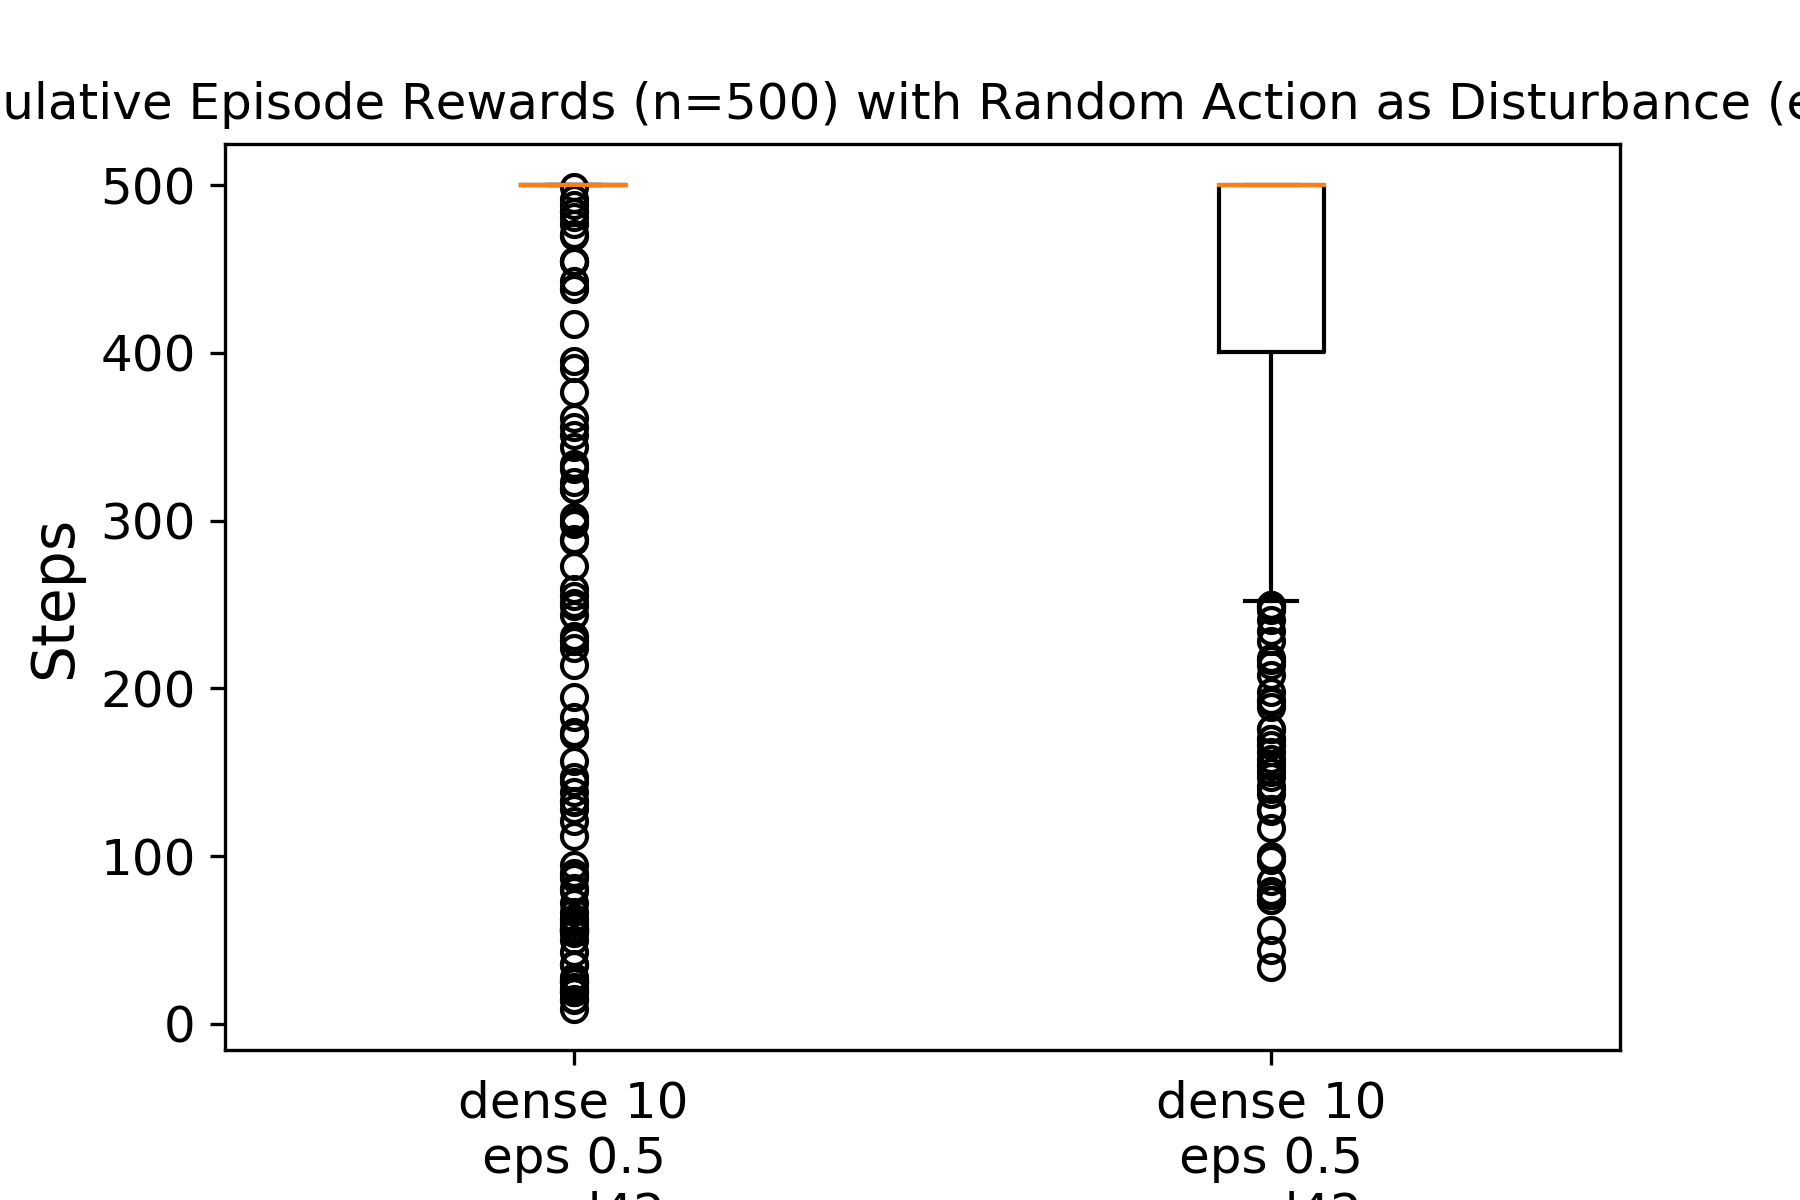 images/continuous_policy_rewards_e0_3.png